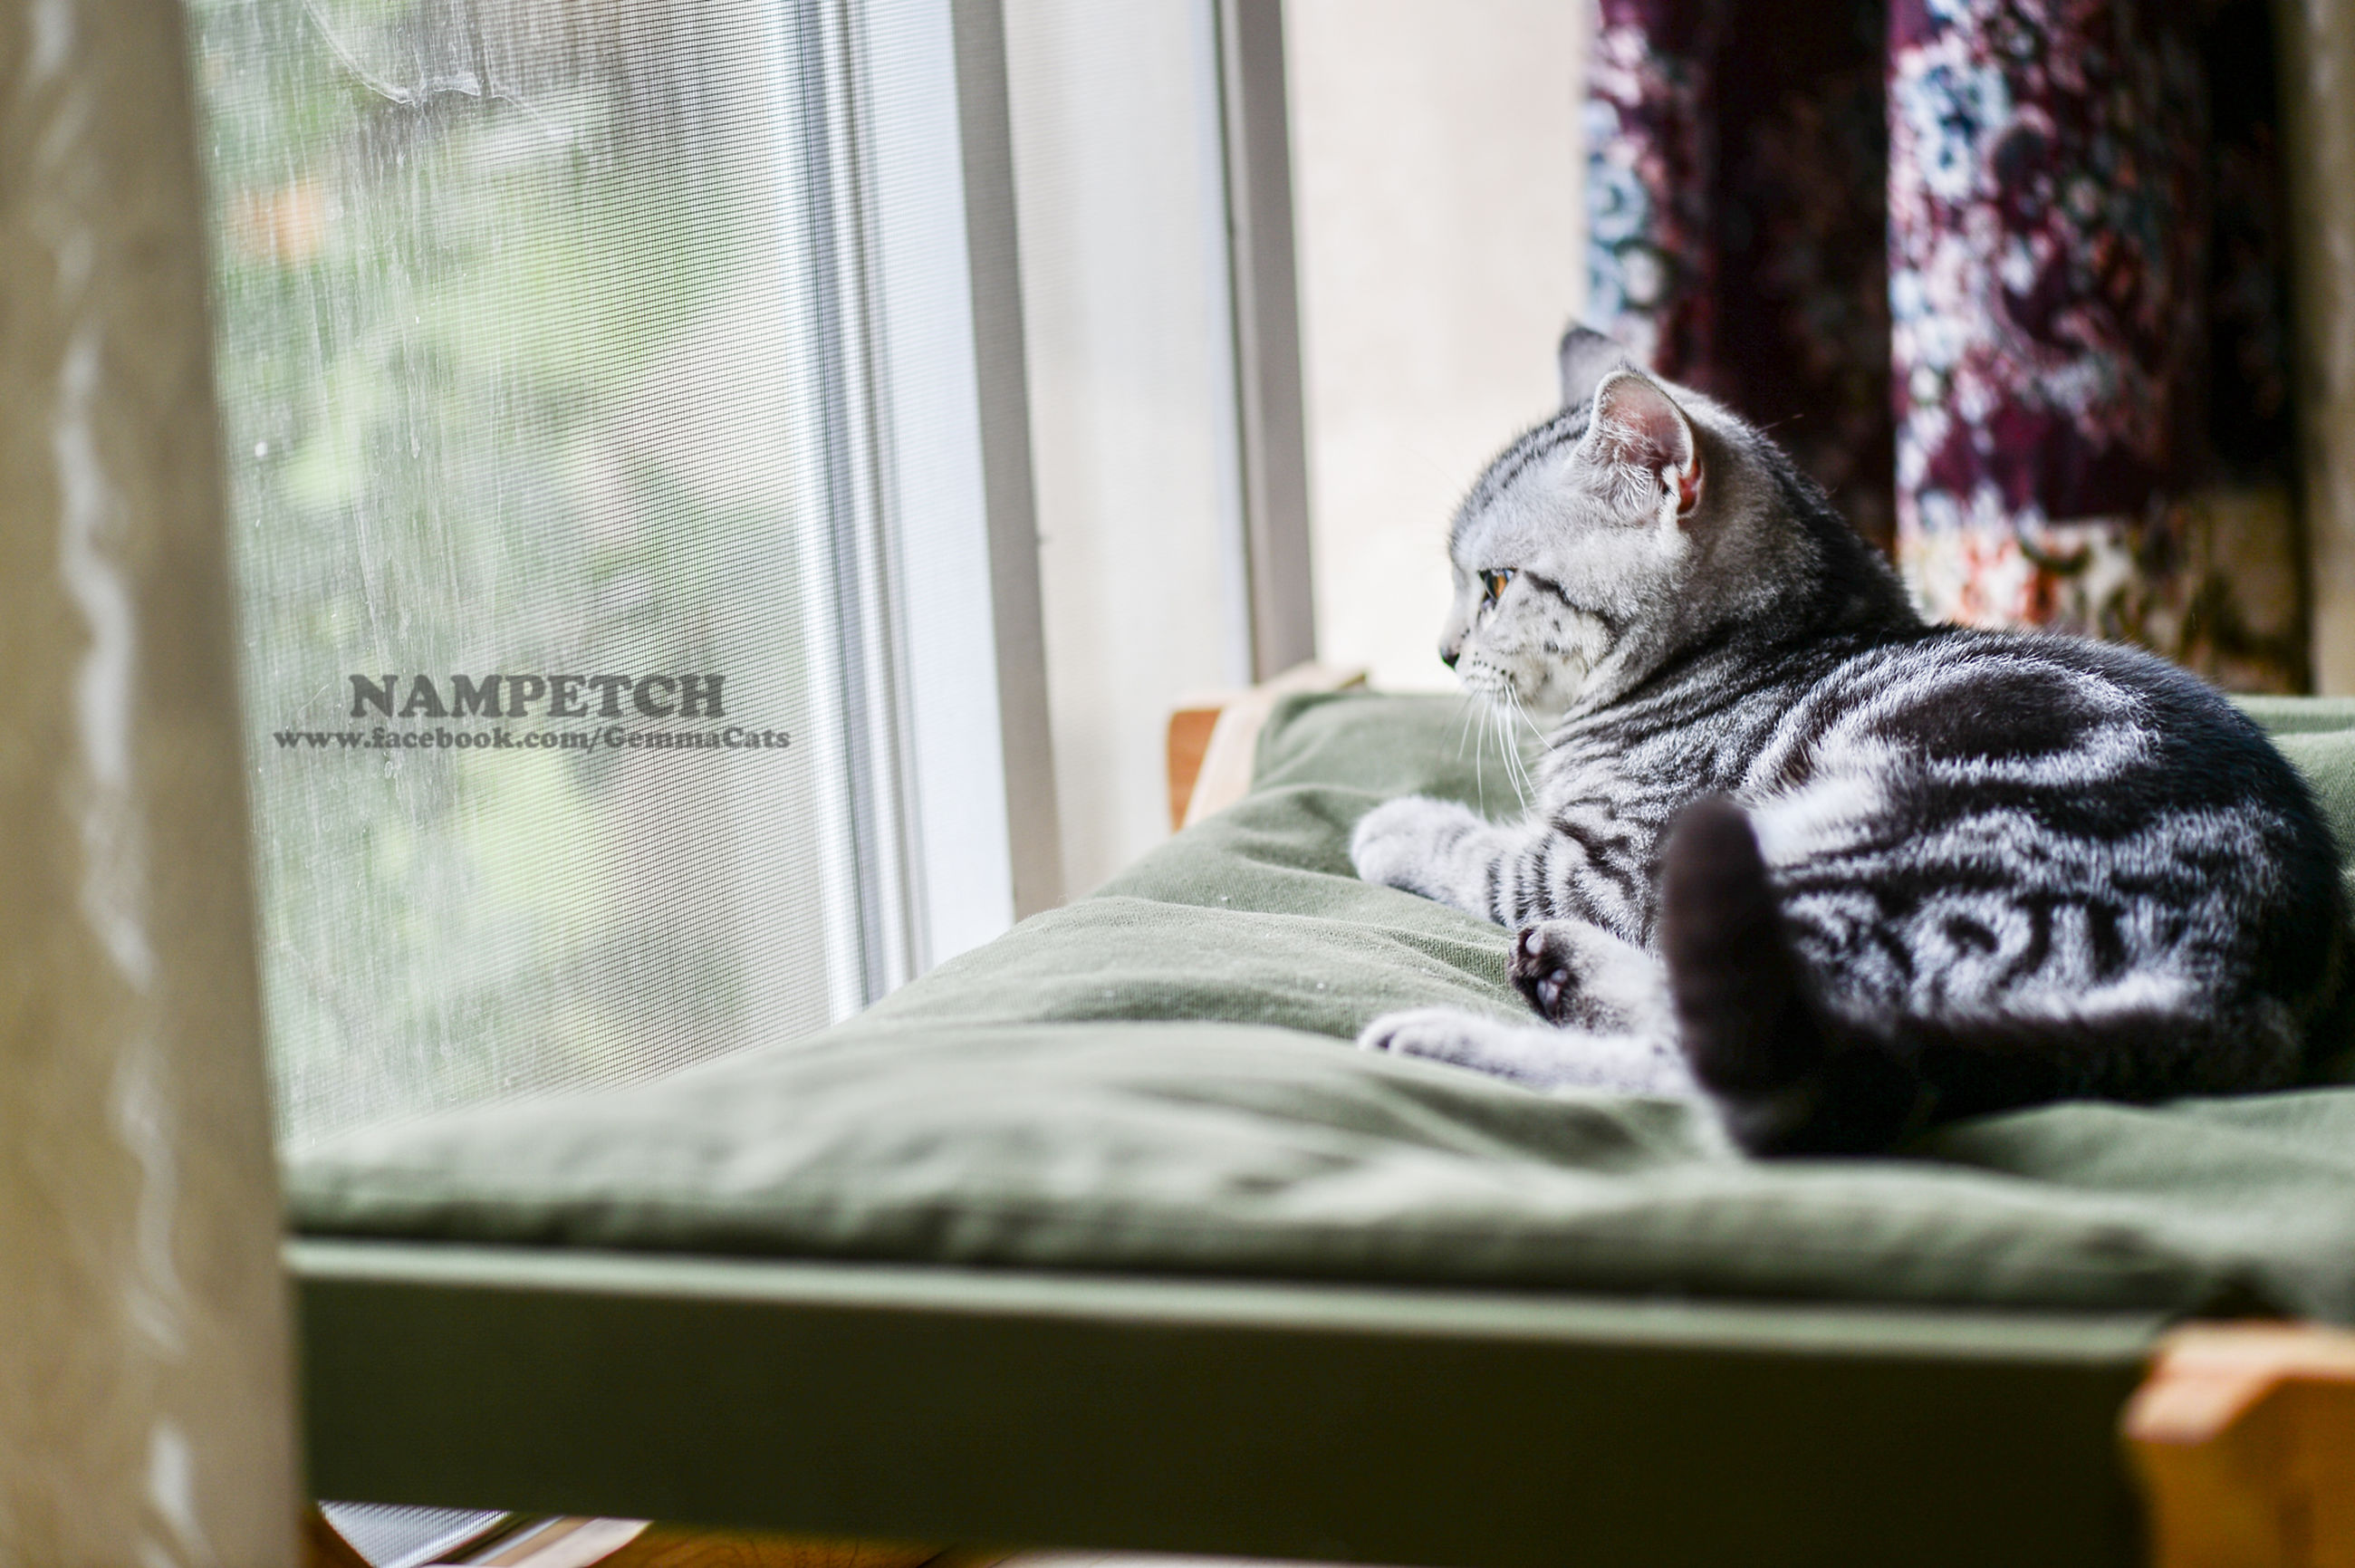 indoors, pets, domestic animals, animal themes, one animal, mammal, relaxation, home interior, resting, domestic cat, sleeping, lying down, bed, window, cat, curtain, home, dog, comfortable, feline